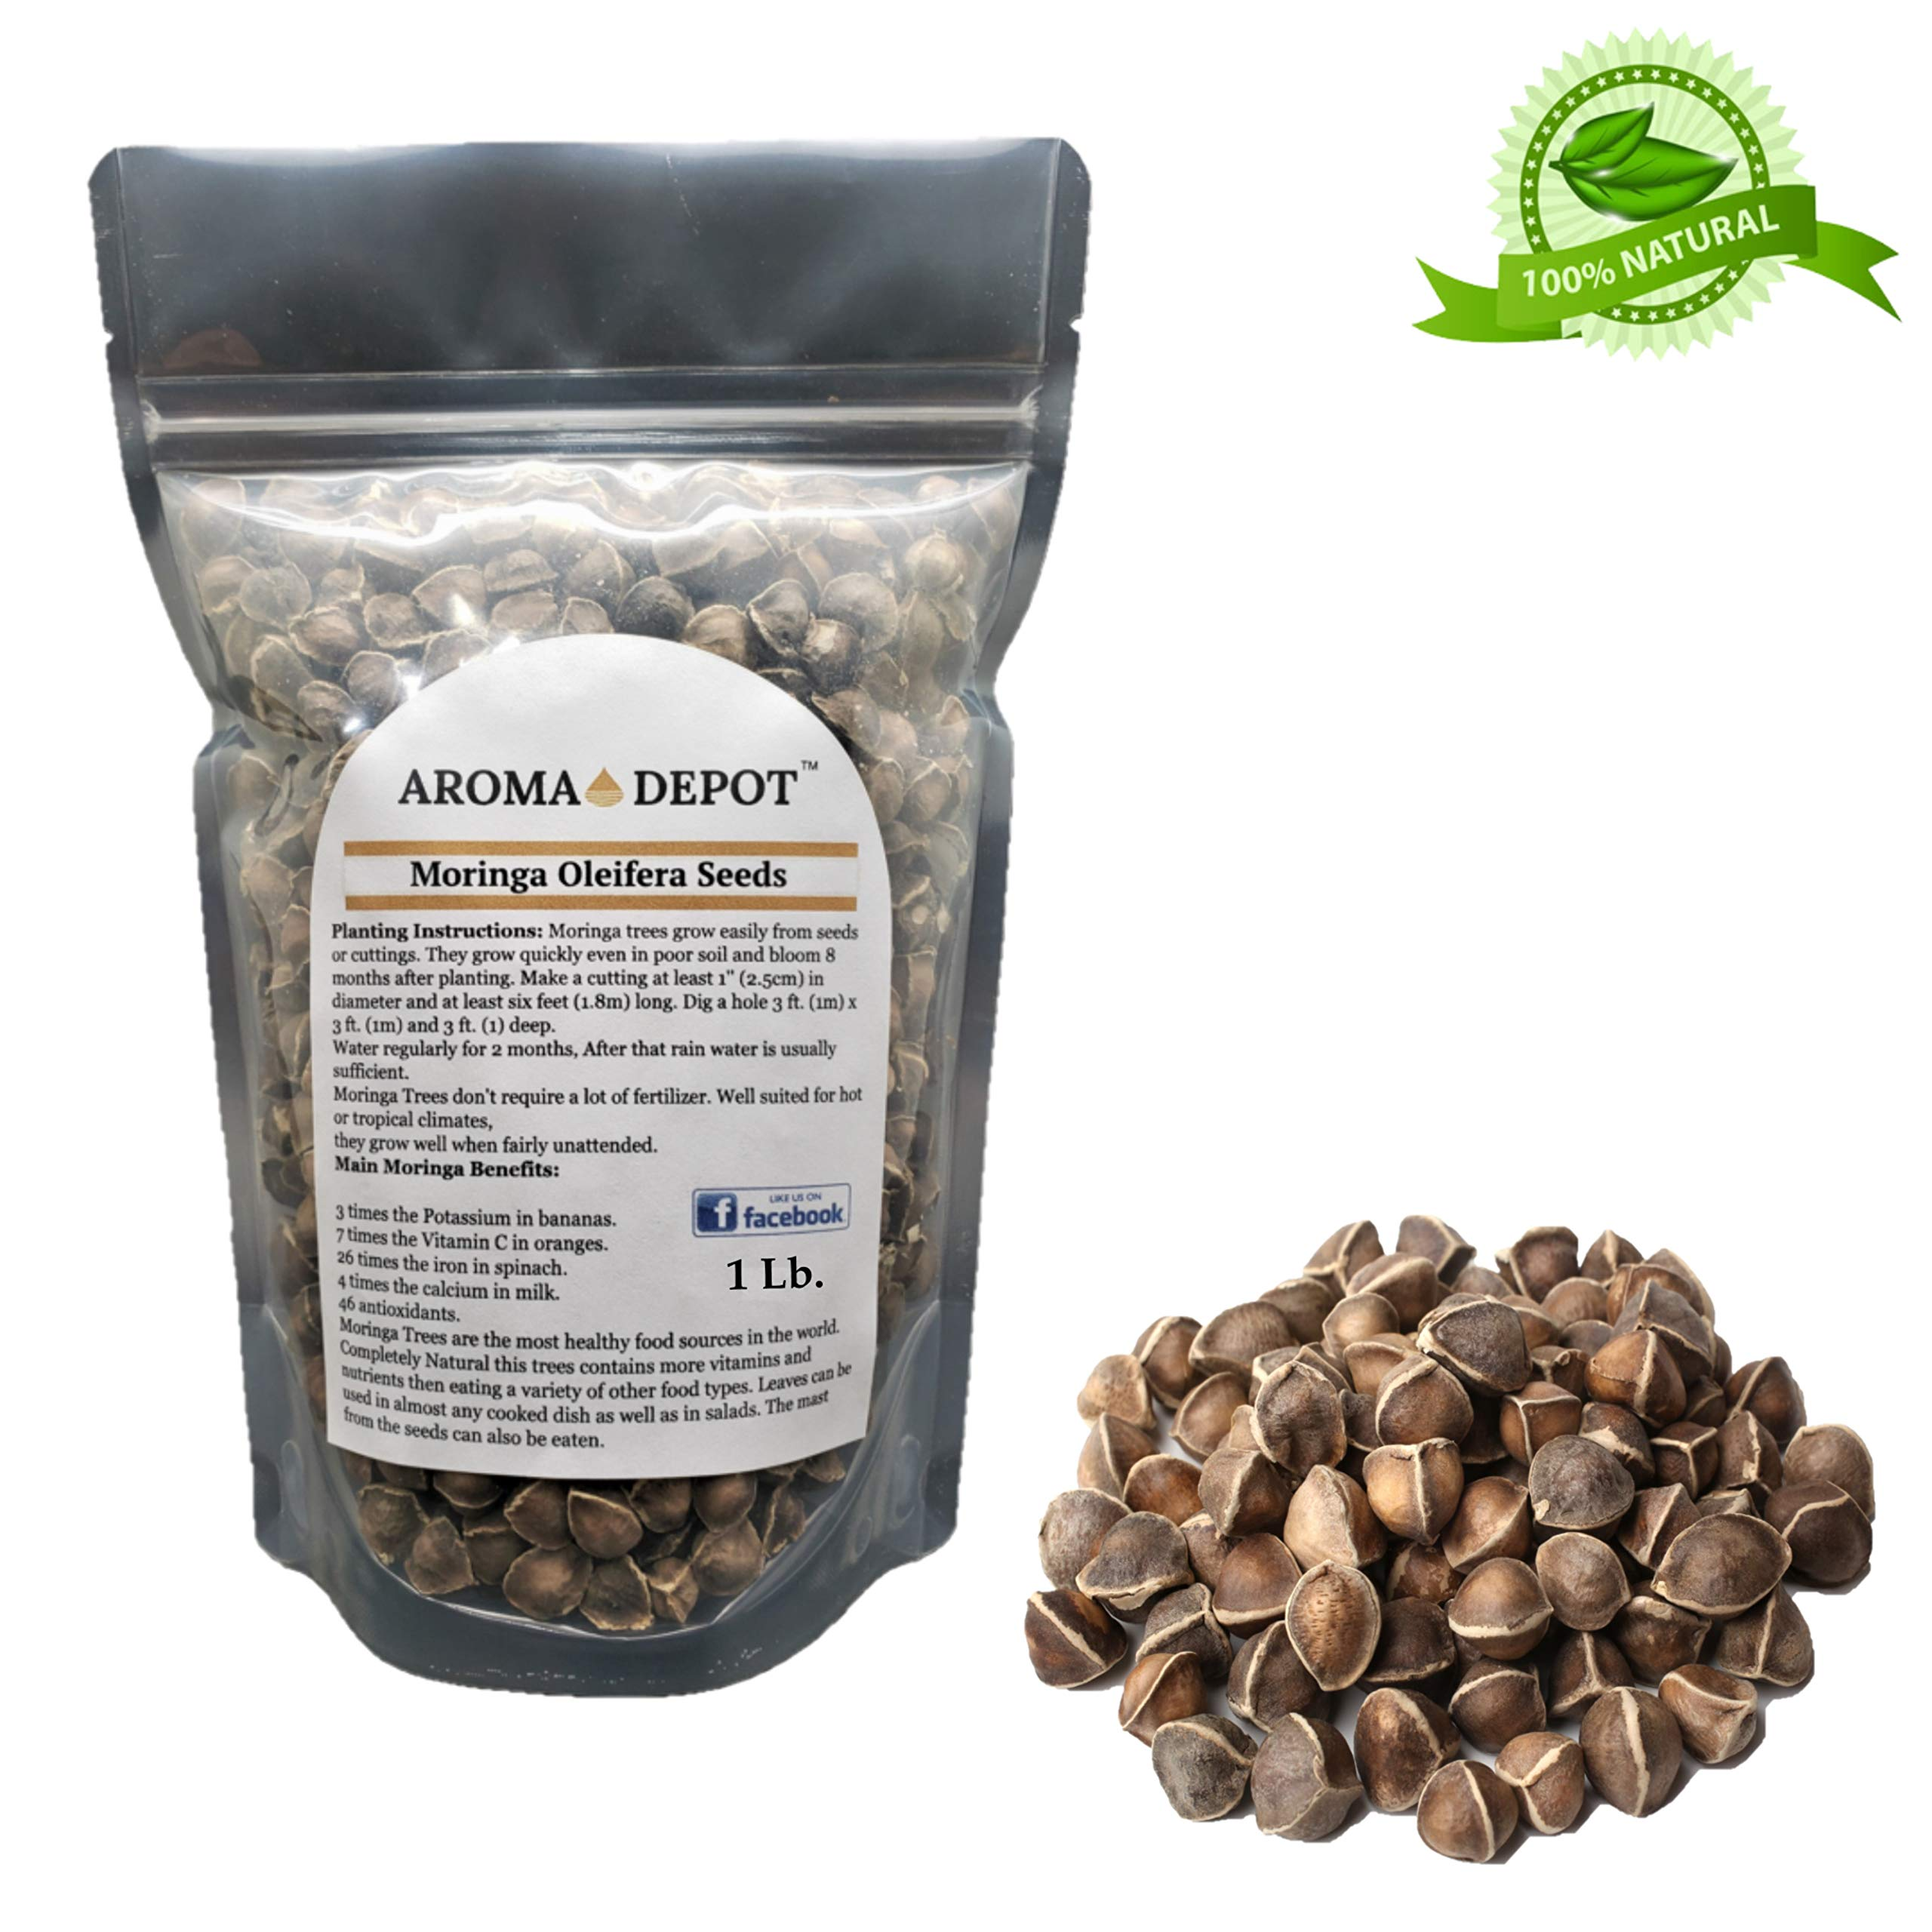 Aroma Depot 1lb / 16 oz Moringa Oleifera Seeds WINGLESS Organically Grown Sun-Dried, 100% Natural, Raw Superfood, Nutritional, Antioxidant & Anti Inflammatory Rich in Vitamins Edible Seeds, Protein by Aroma Depot (Image #1)